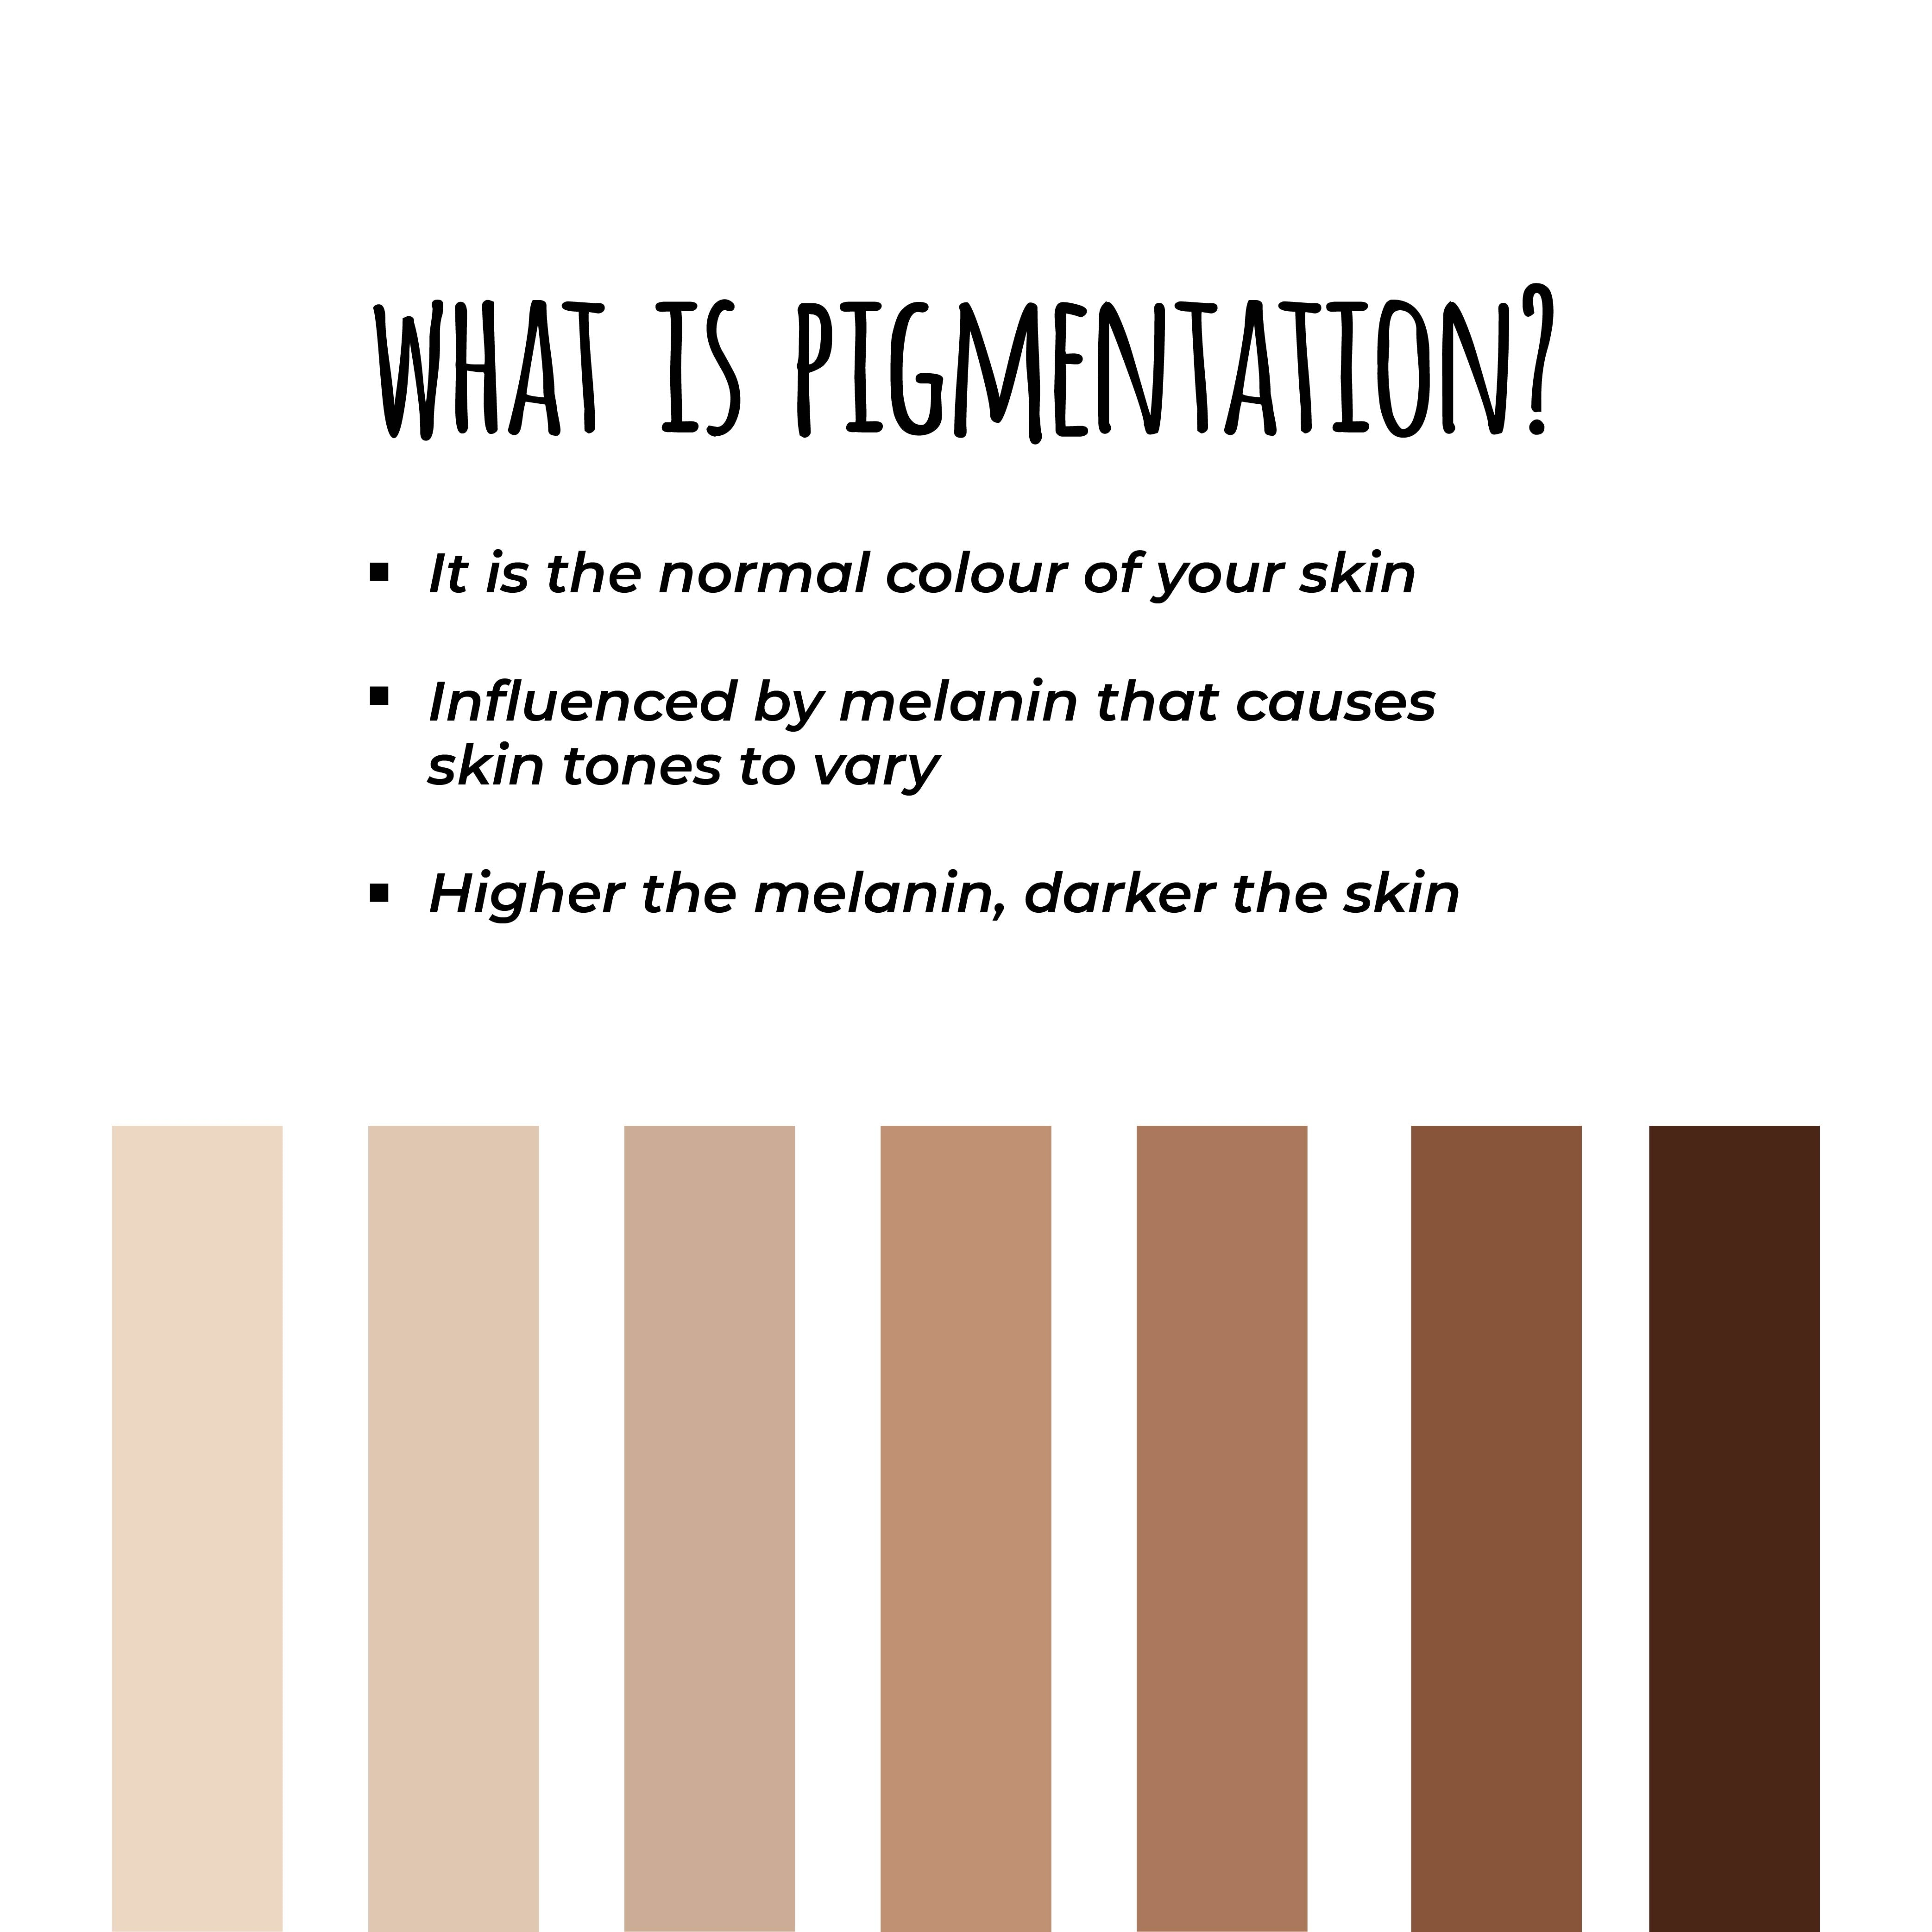 This is an image of what is pigmentation